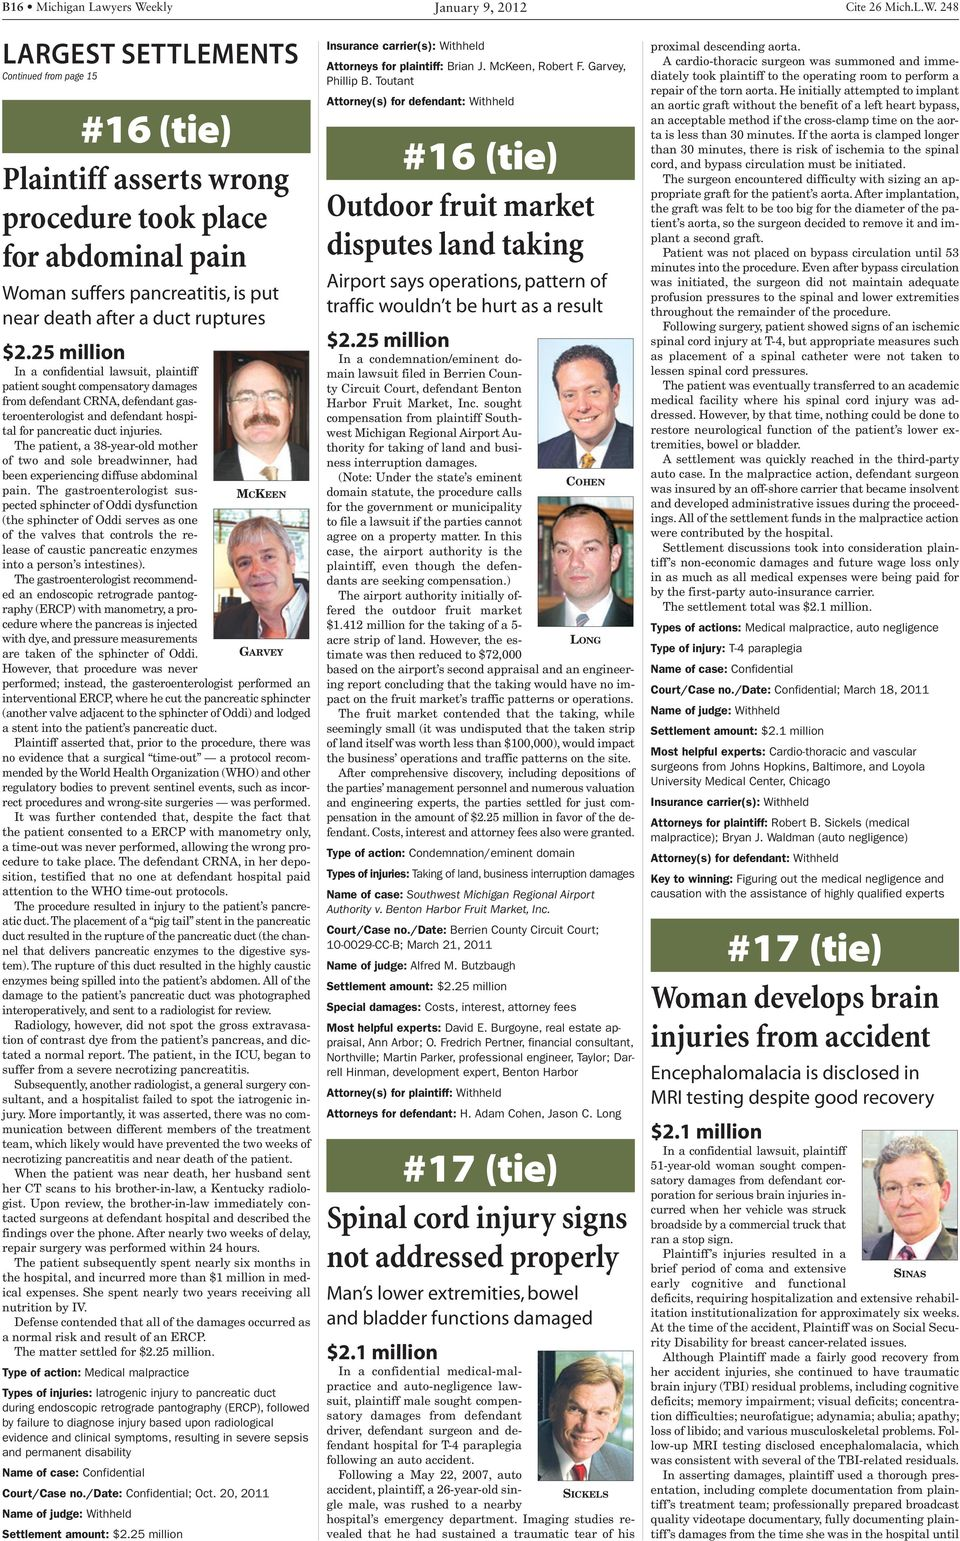 248 LARGEST SETTLEMENTS Continued from page 15 #16 (tie) Plaintiff asserts wrong procedure took place for abdominal pain Woman suffers pancreatitis, is put near death after a duct ruptures $2.